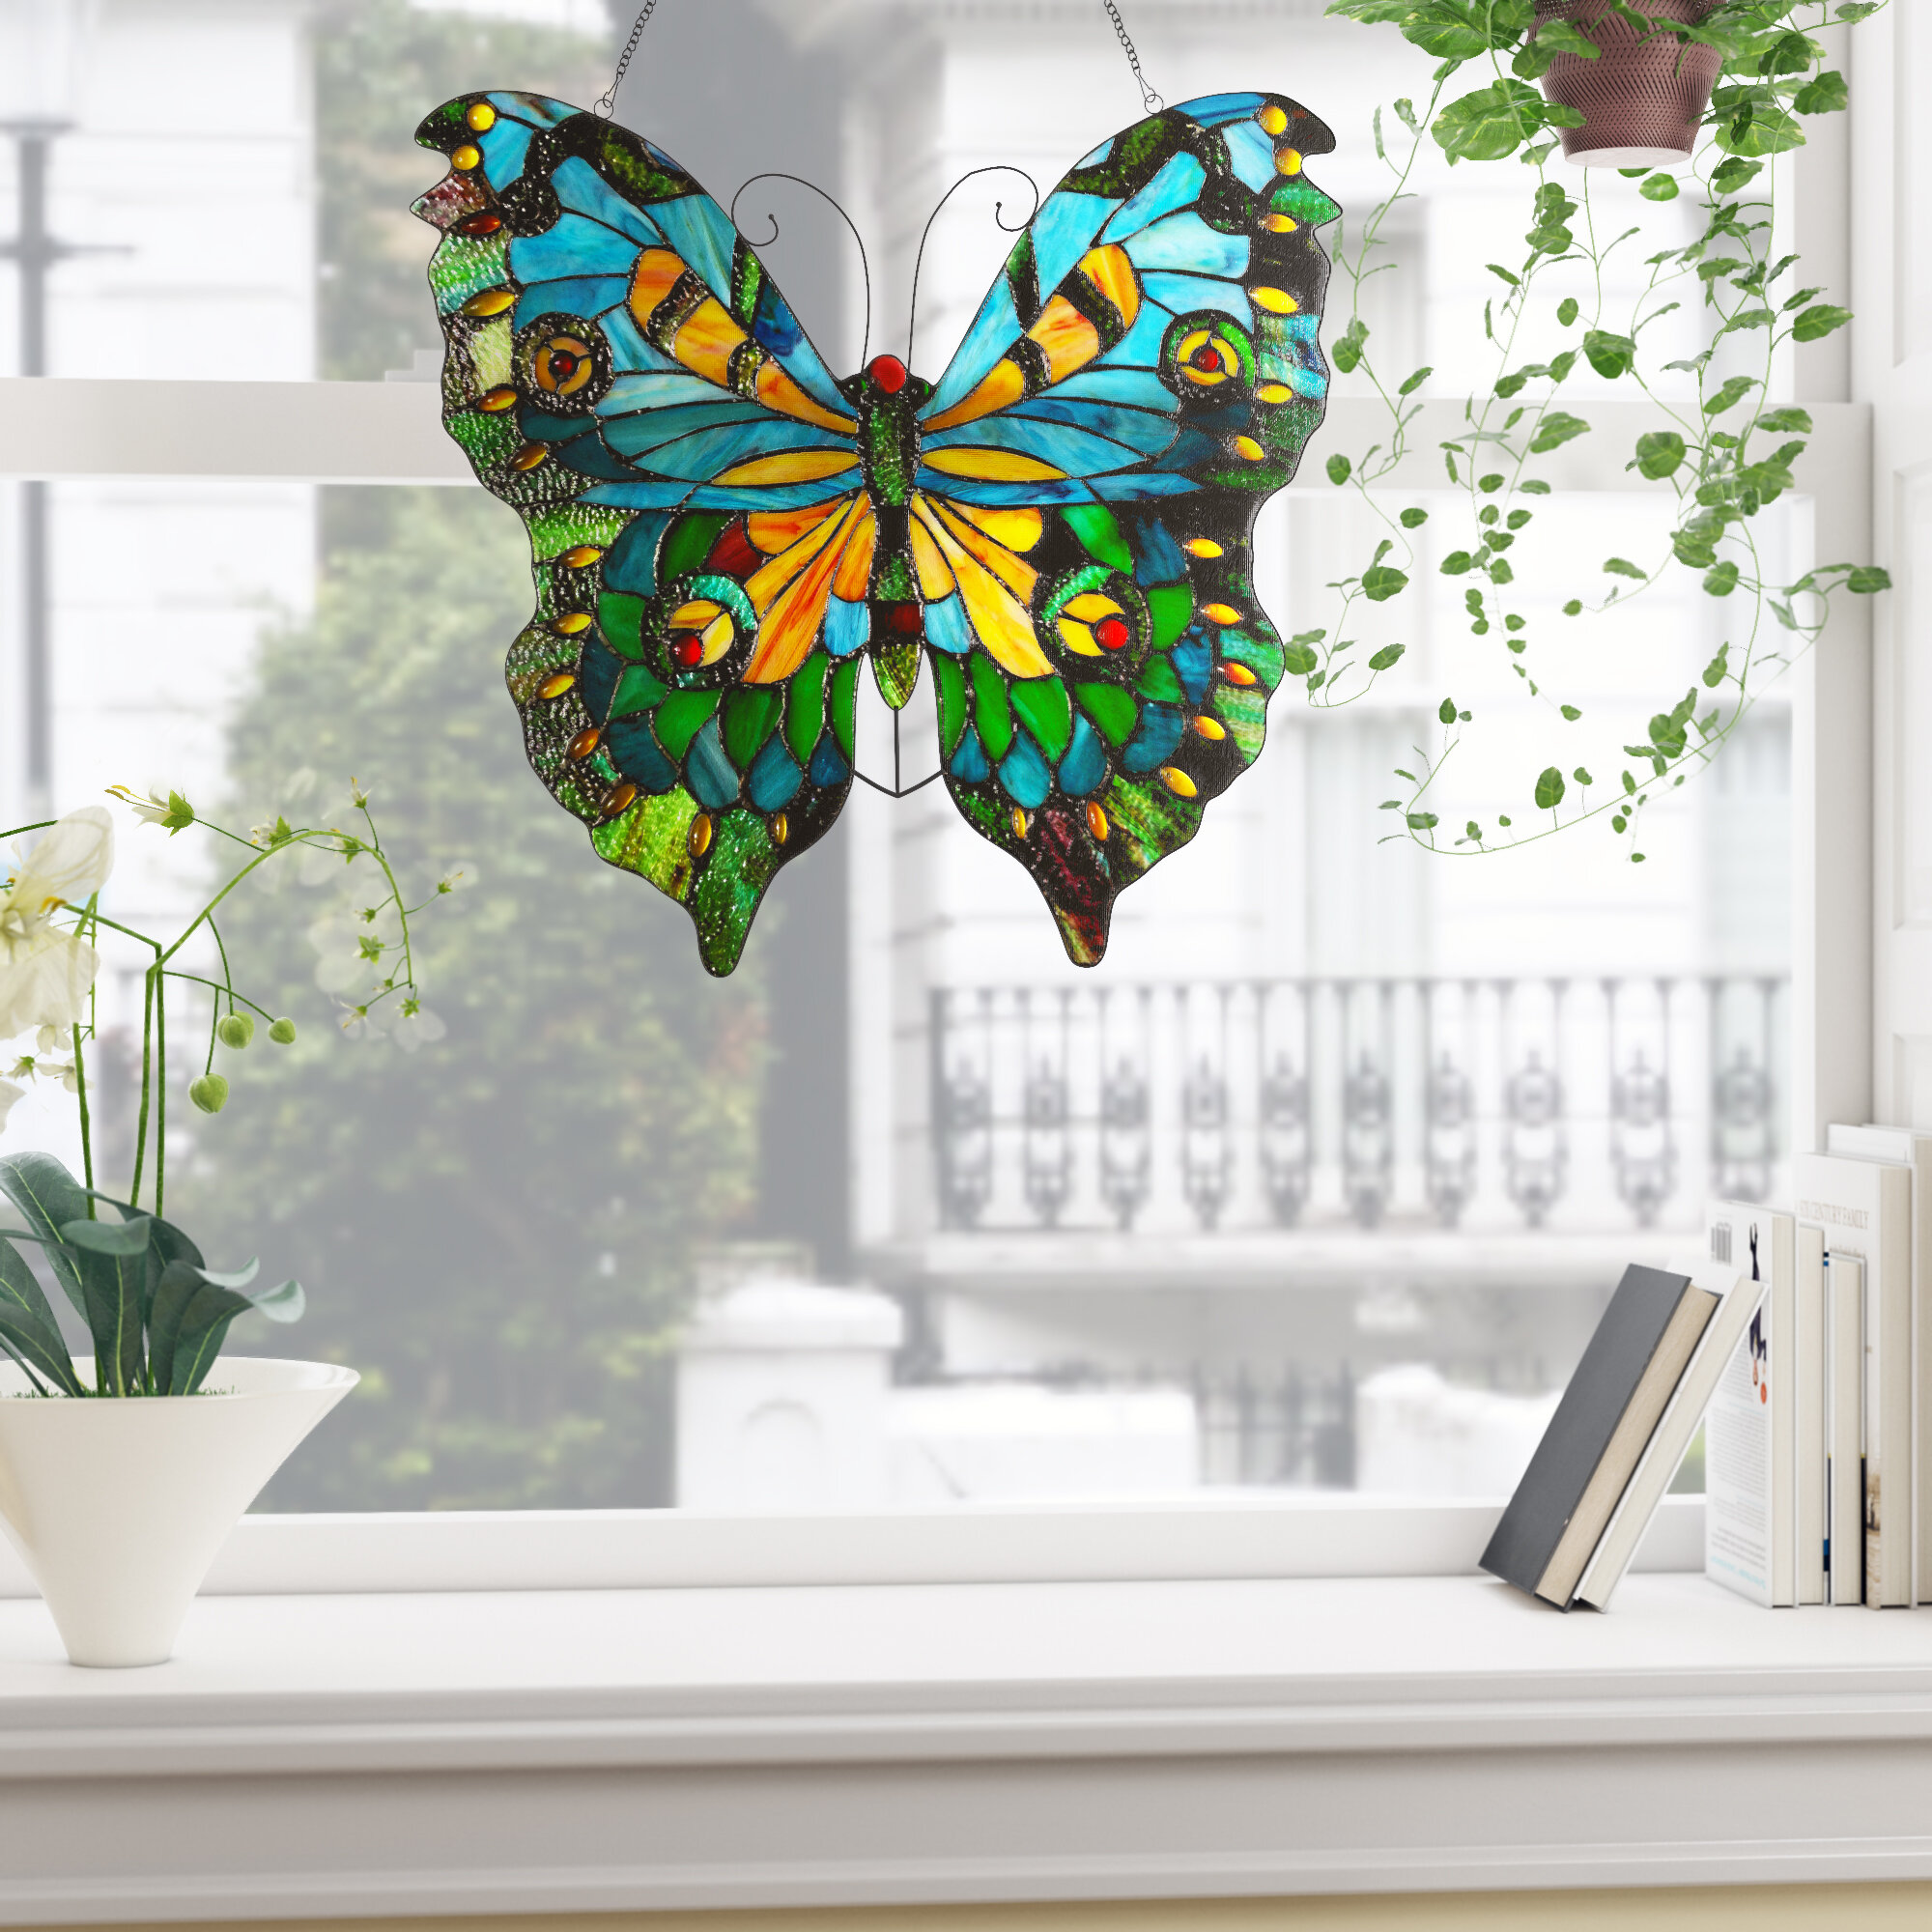 4f985bfdf887 Astoria Grand Laurie Tiffany Glass Butterfly Window Panel   Reviews ...